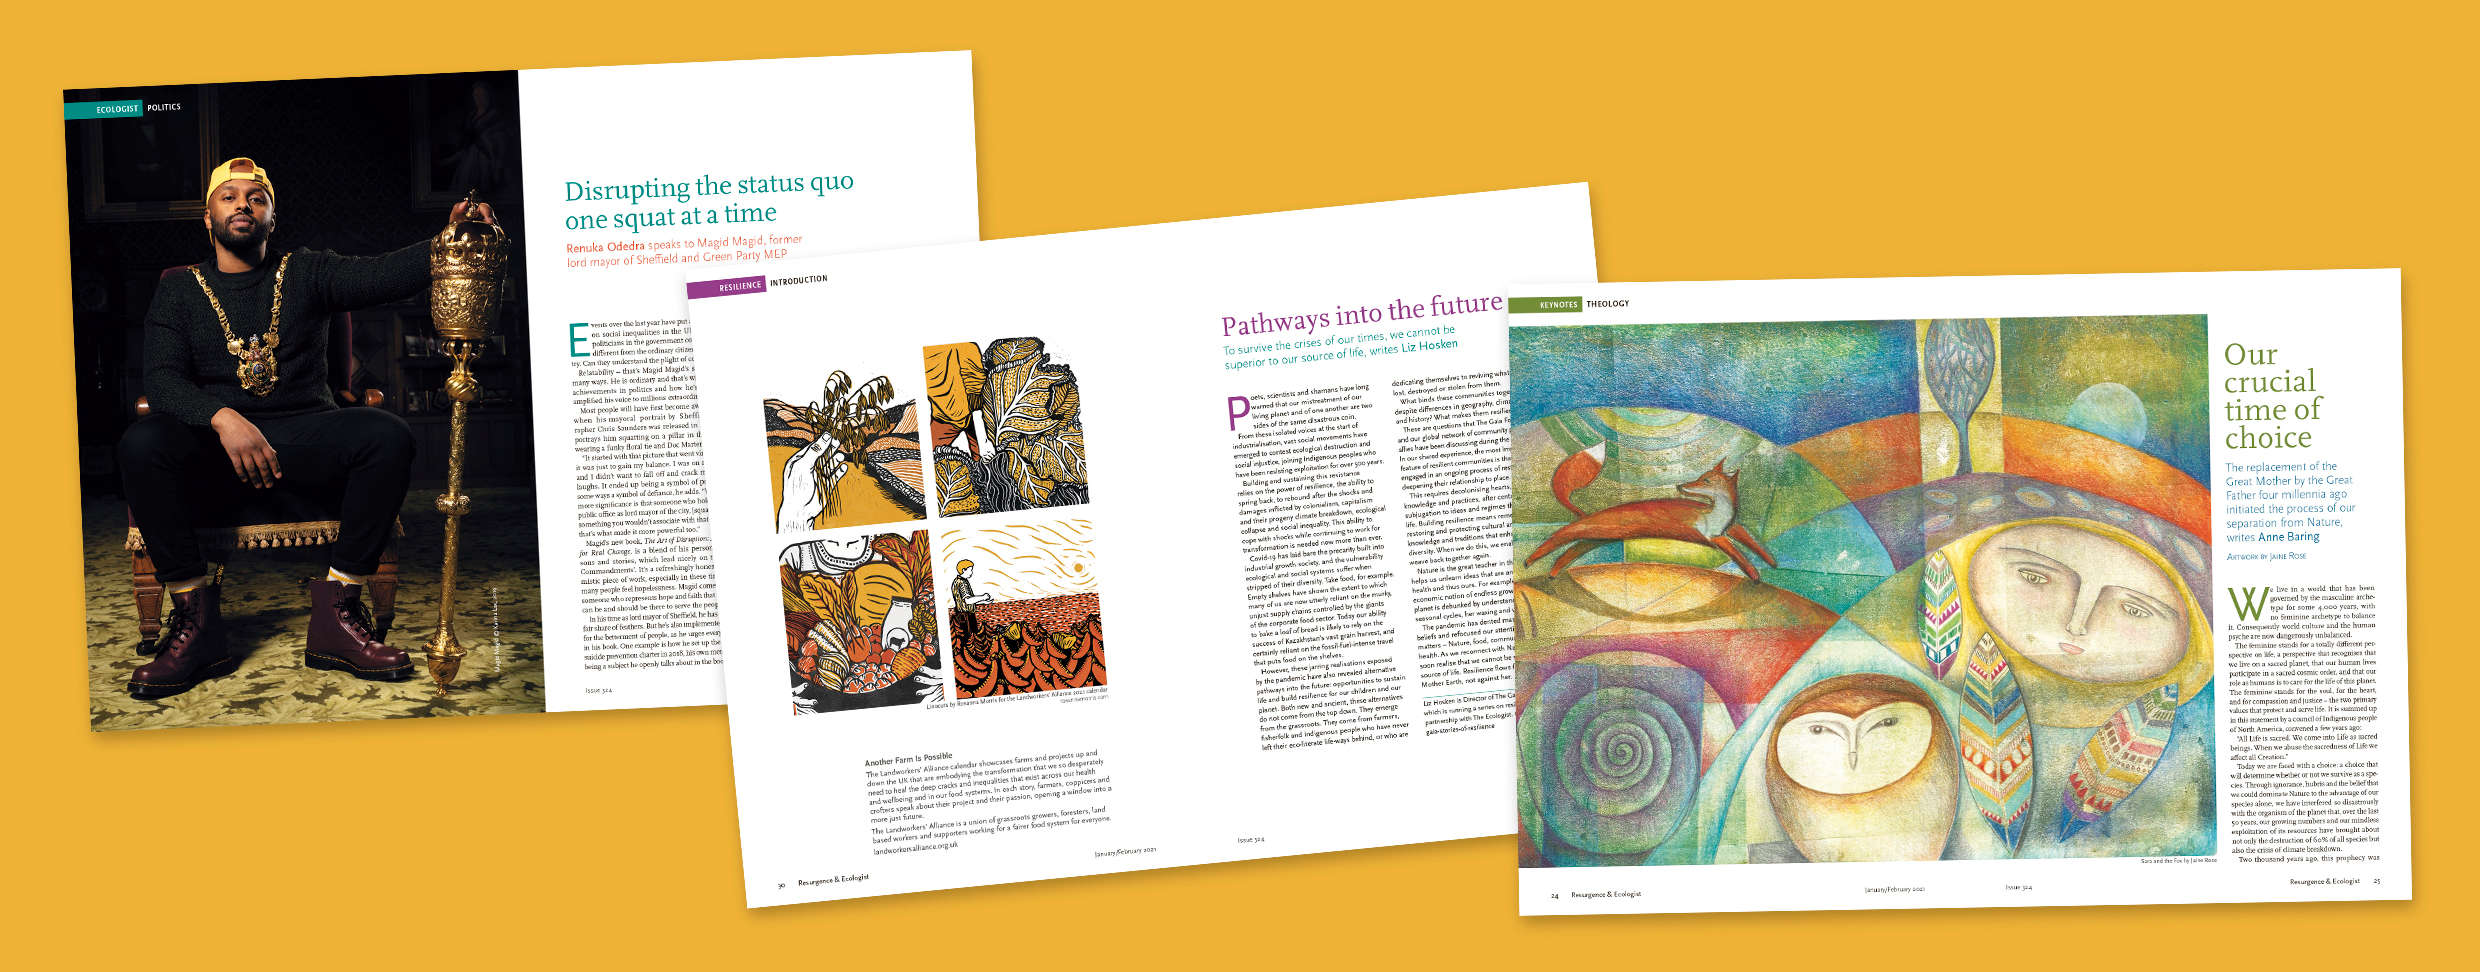 Images from Resurgence and Ecologist Magazine issue 324